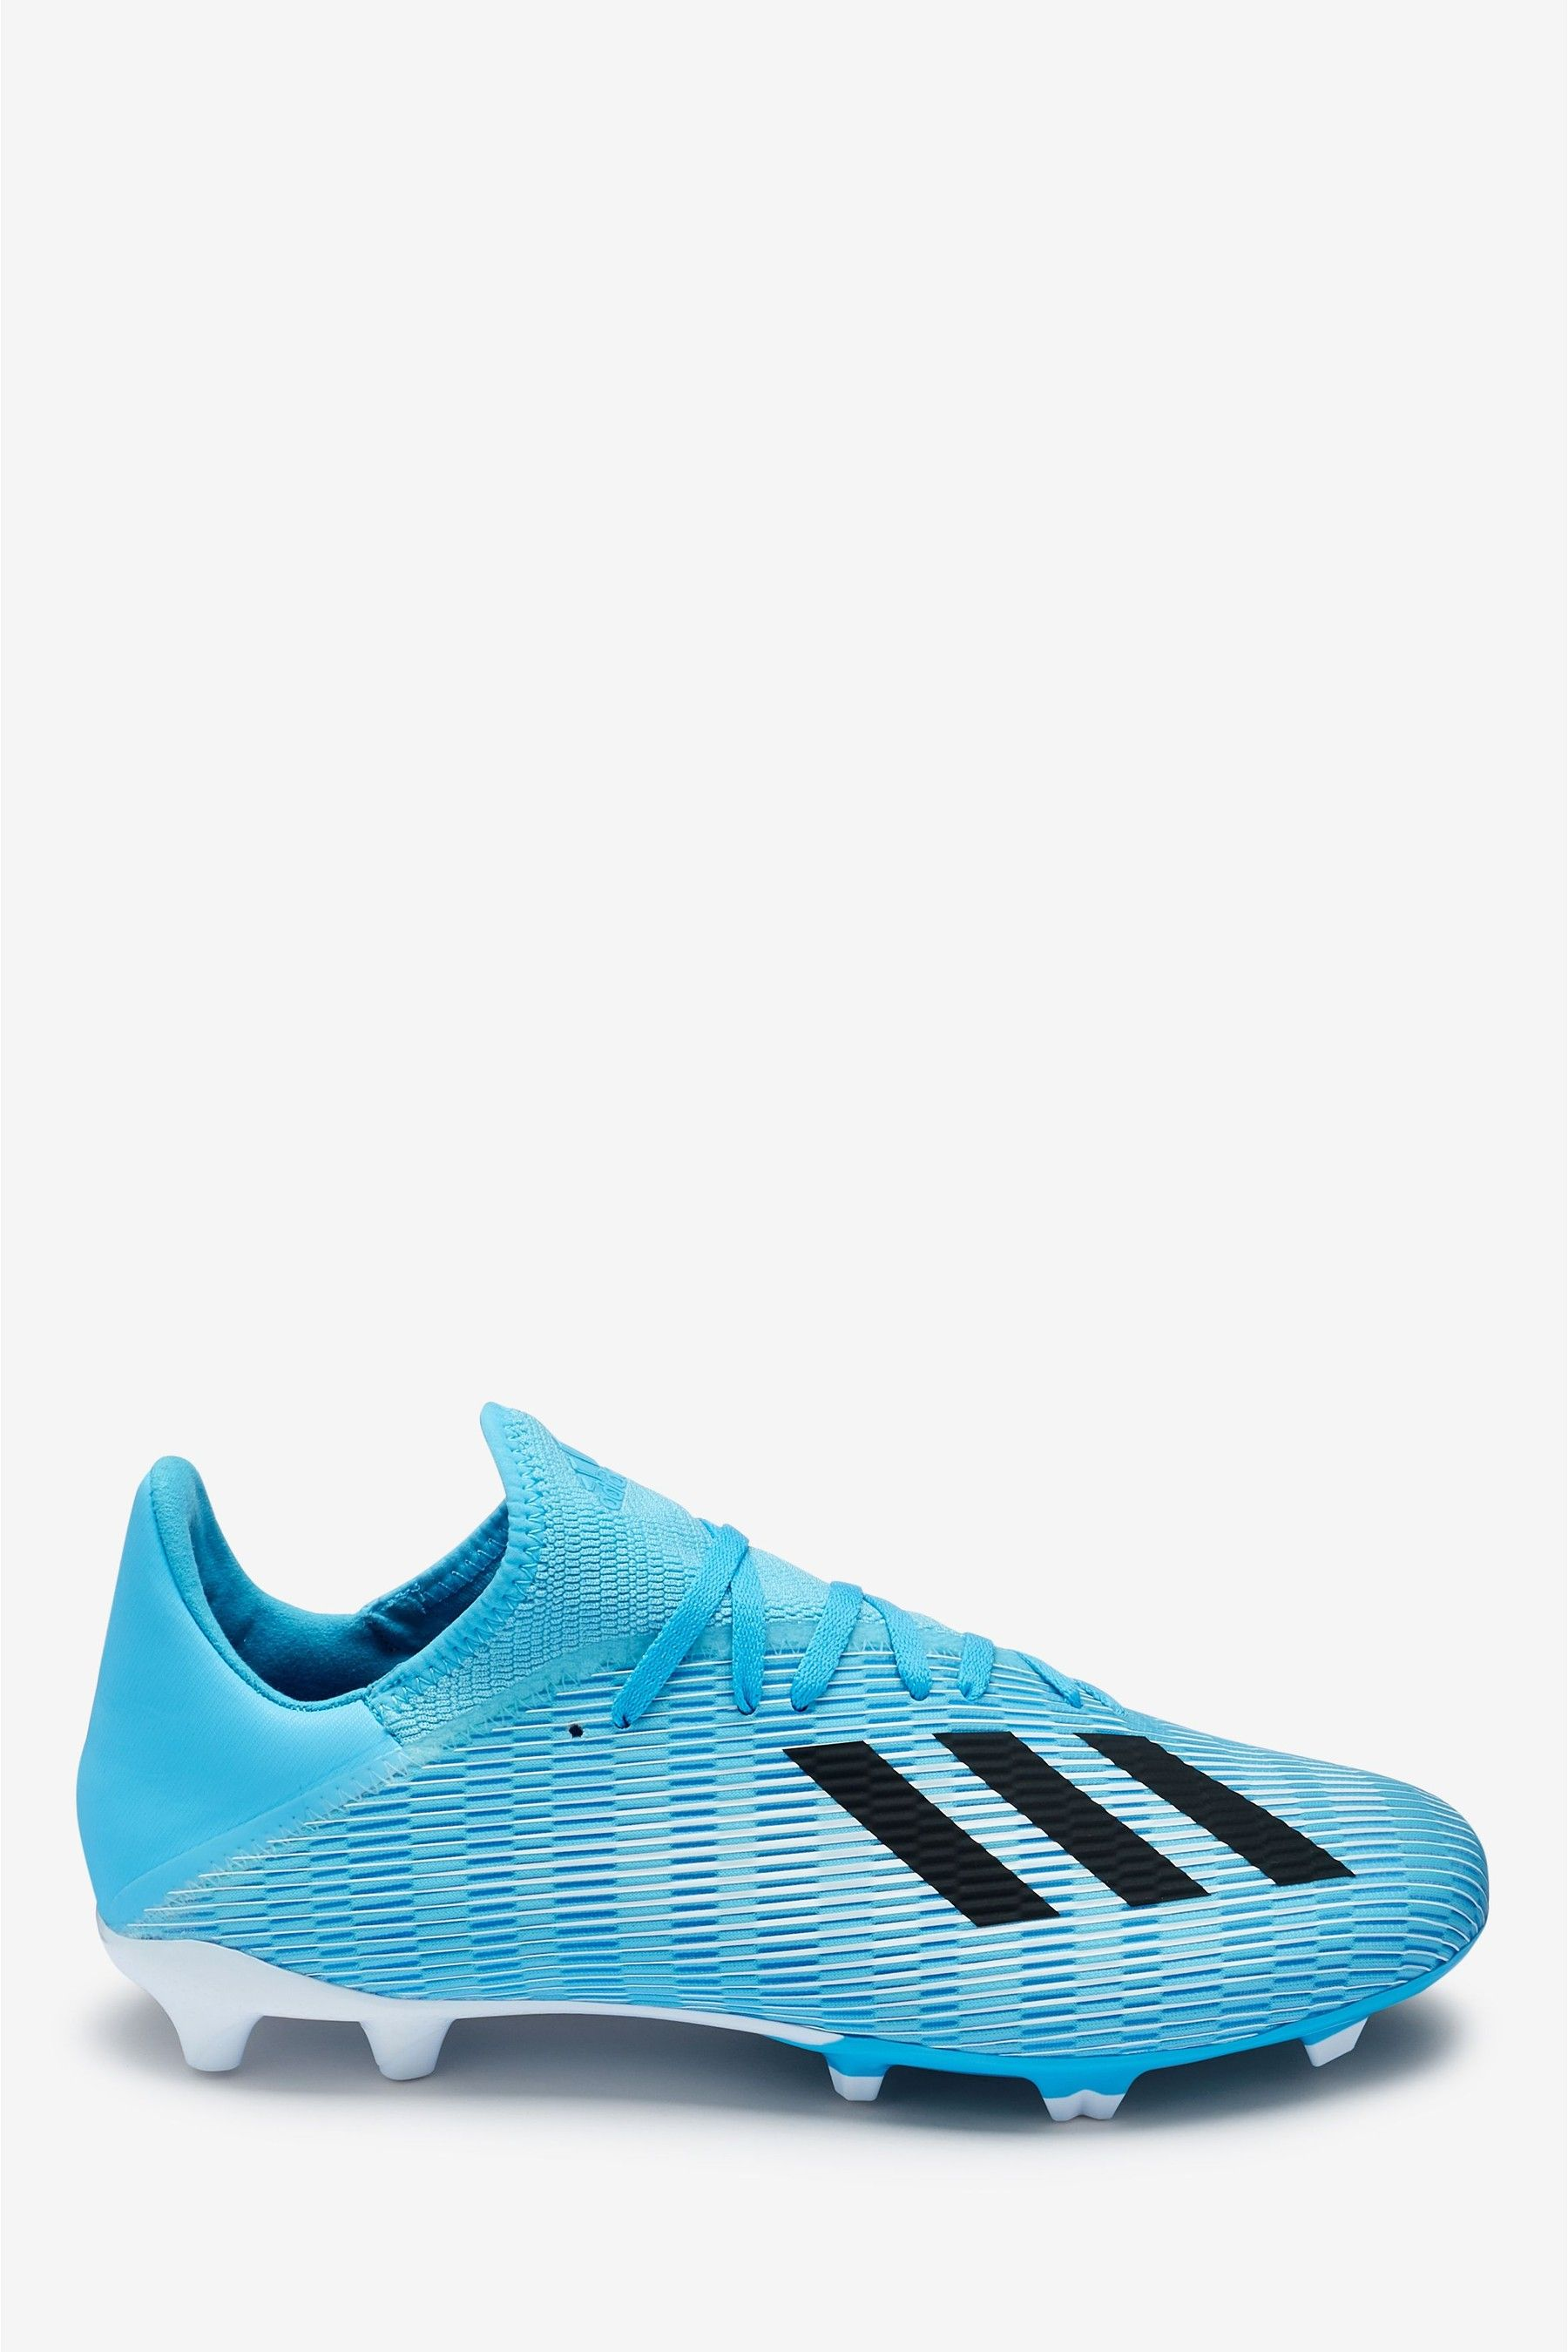 Mens Adidas Blue Hardwired X Firm Ground Football Boots Blue Blue Adidas Football Boots Old Football Boots